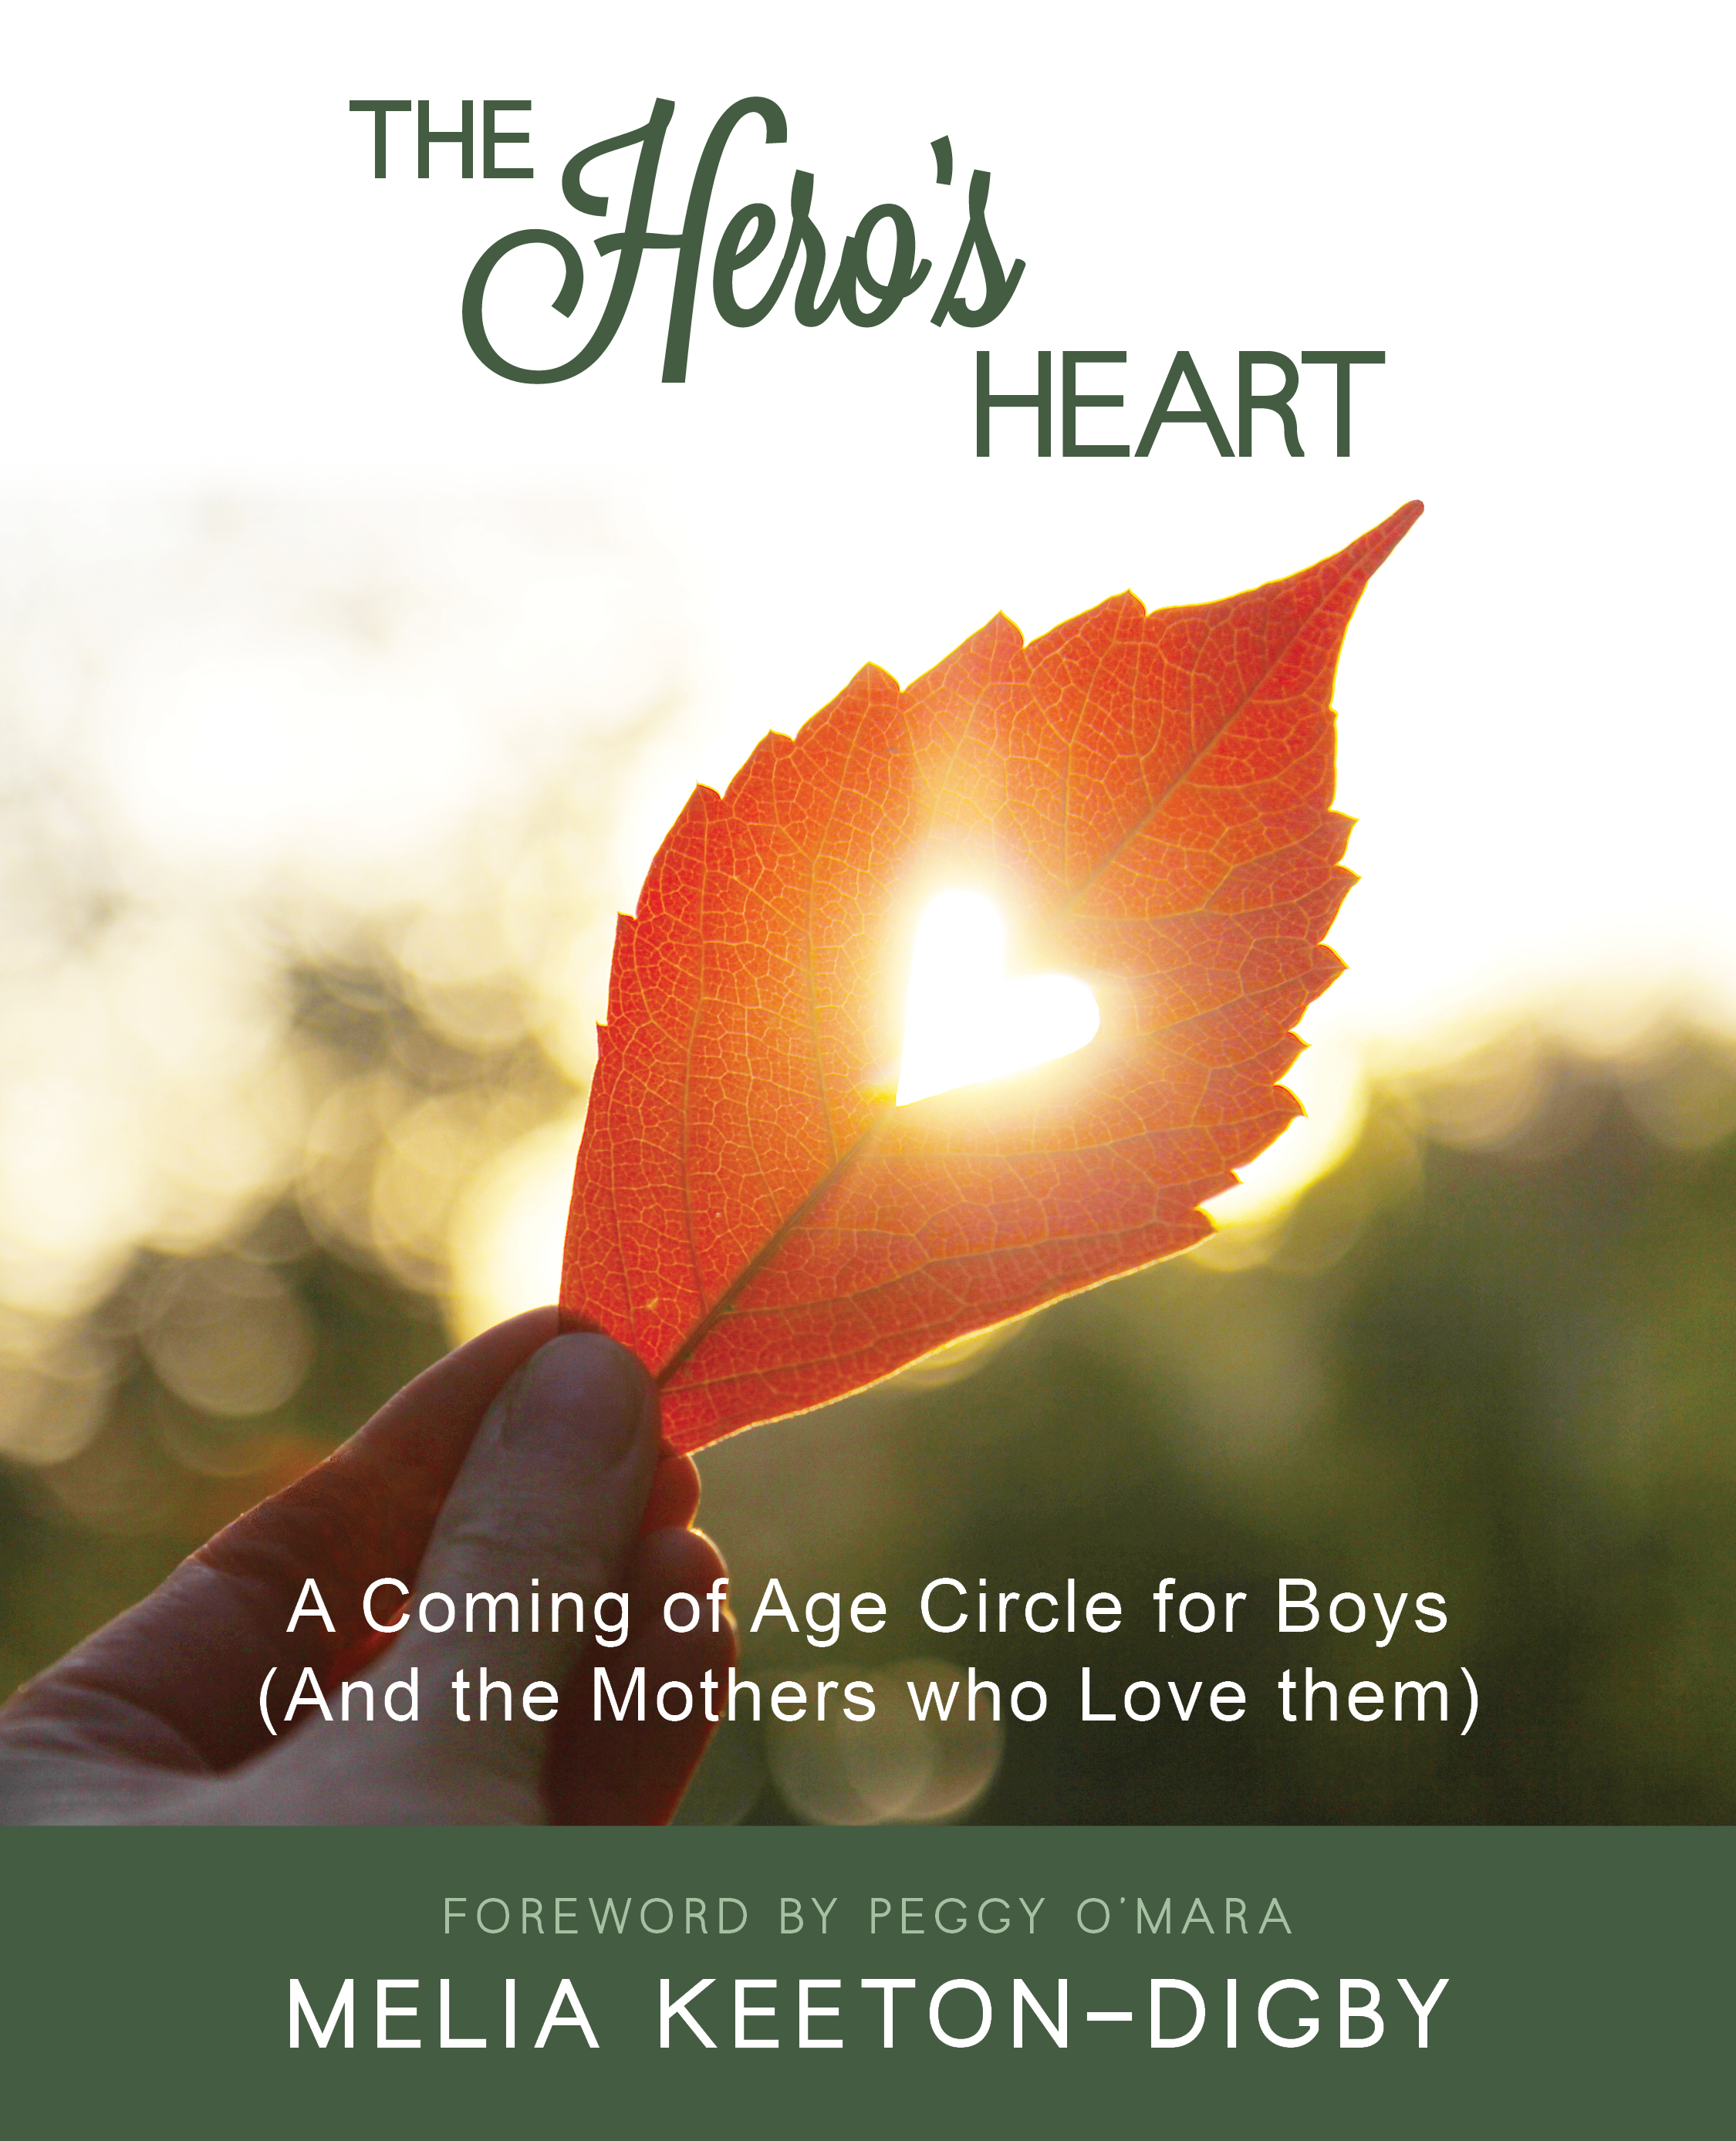 The Hero's Heart by Melia Keeton-Digby, Womancraft Publishing